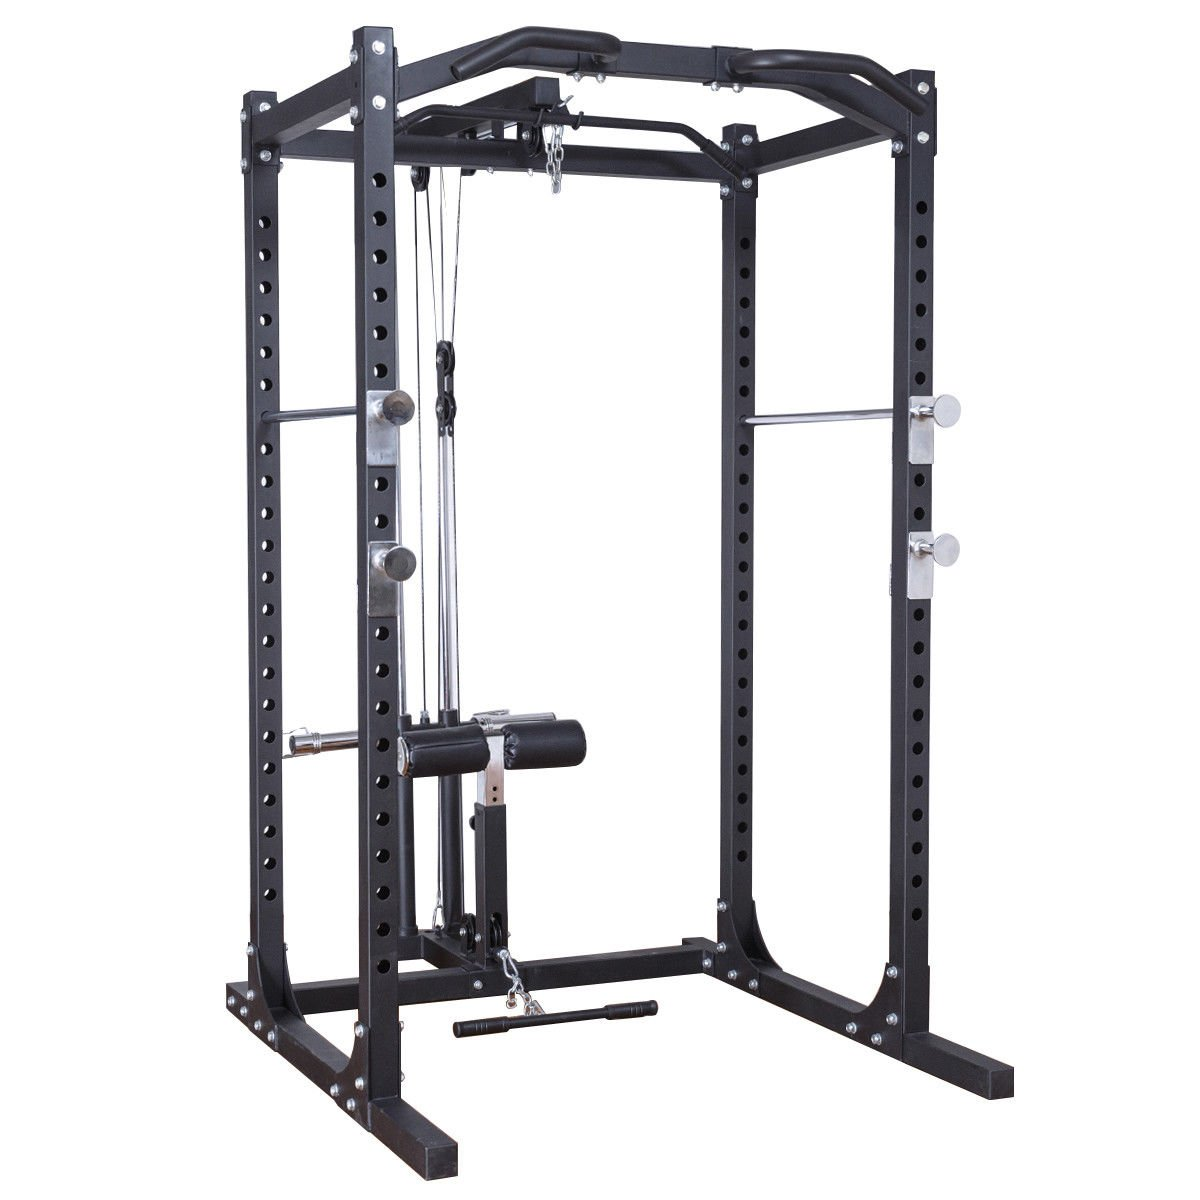 Goplus Fitness Power Rack w/ Lat Pull Attachment Squat Cage Equipment by Goplus